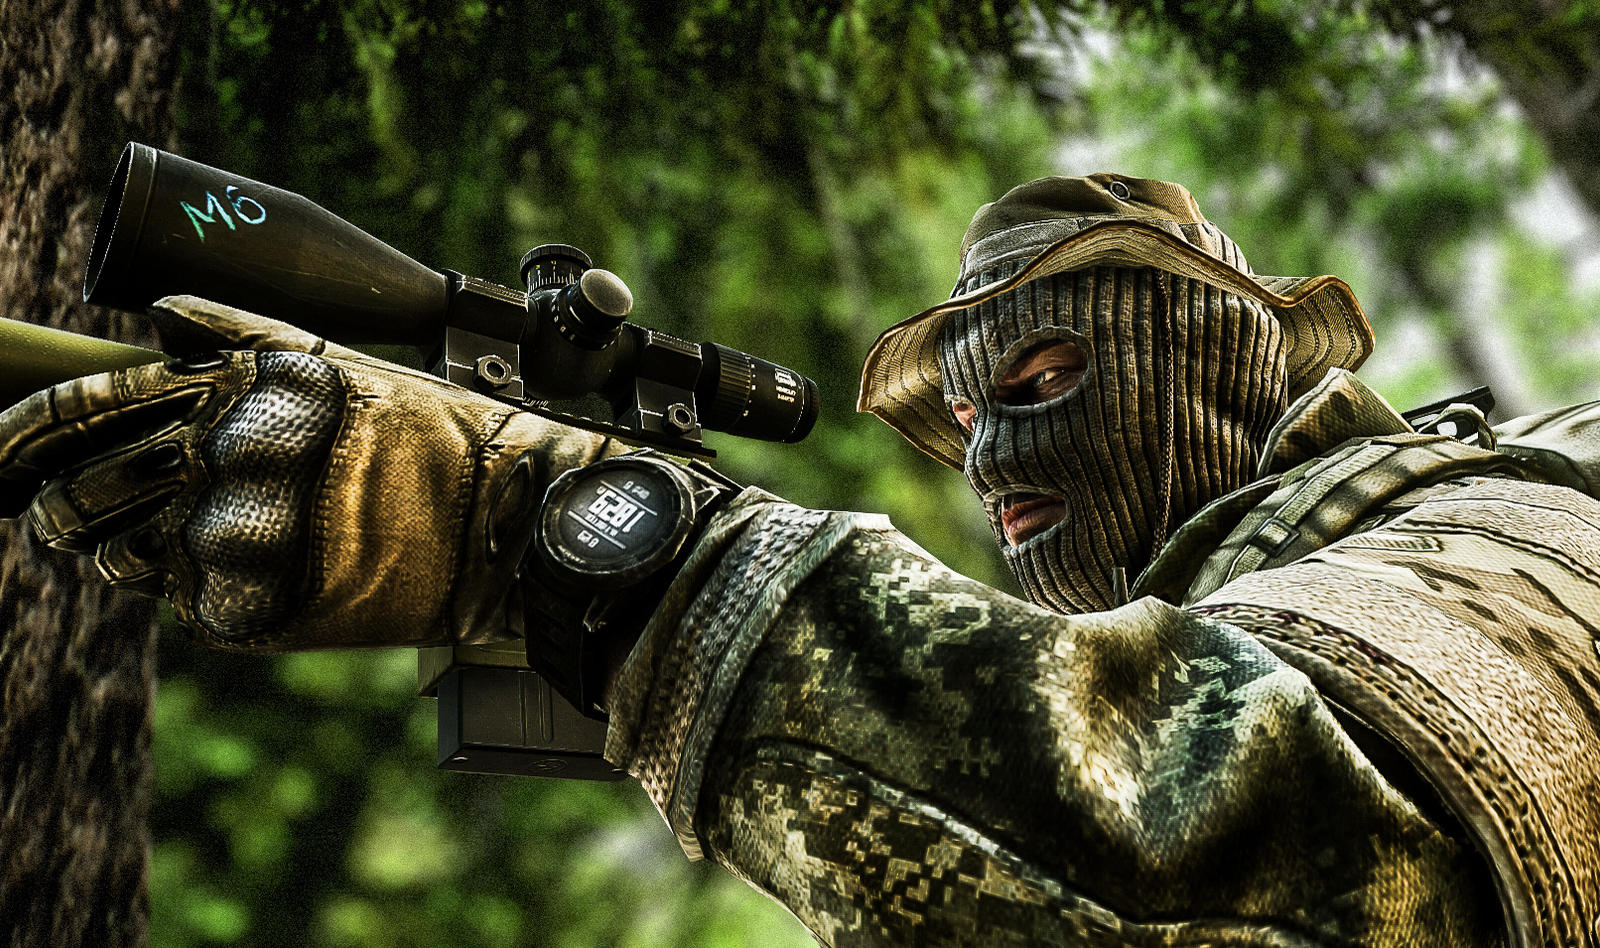 Escape From Tarkov WOODS SNIPER Wallpaper 1080p by